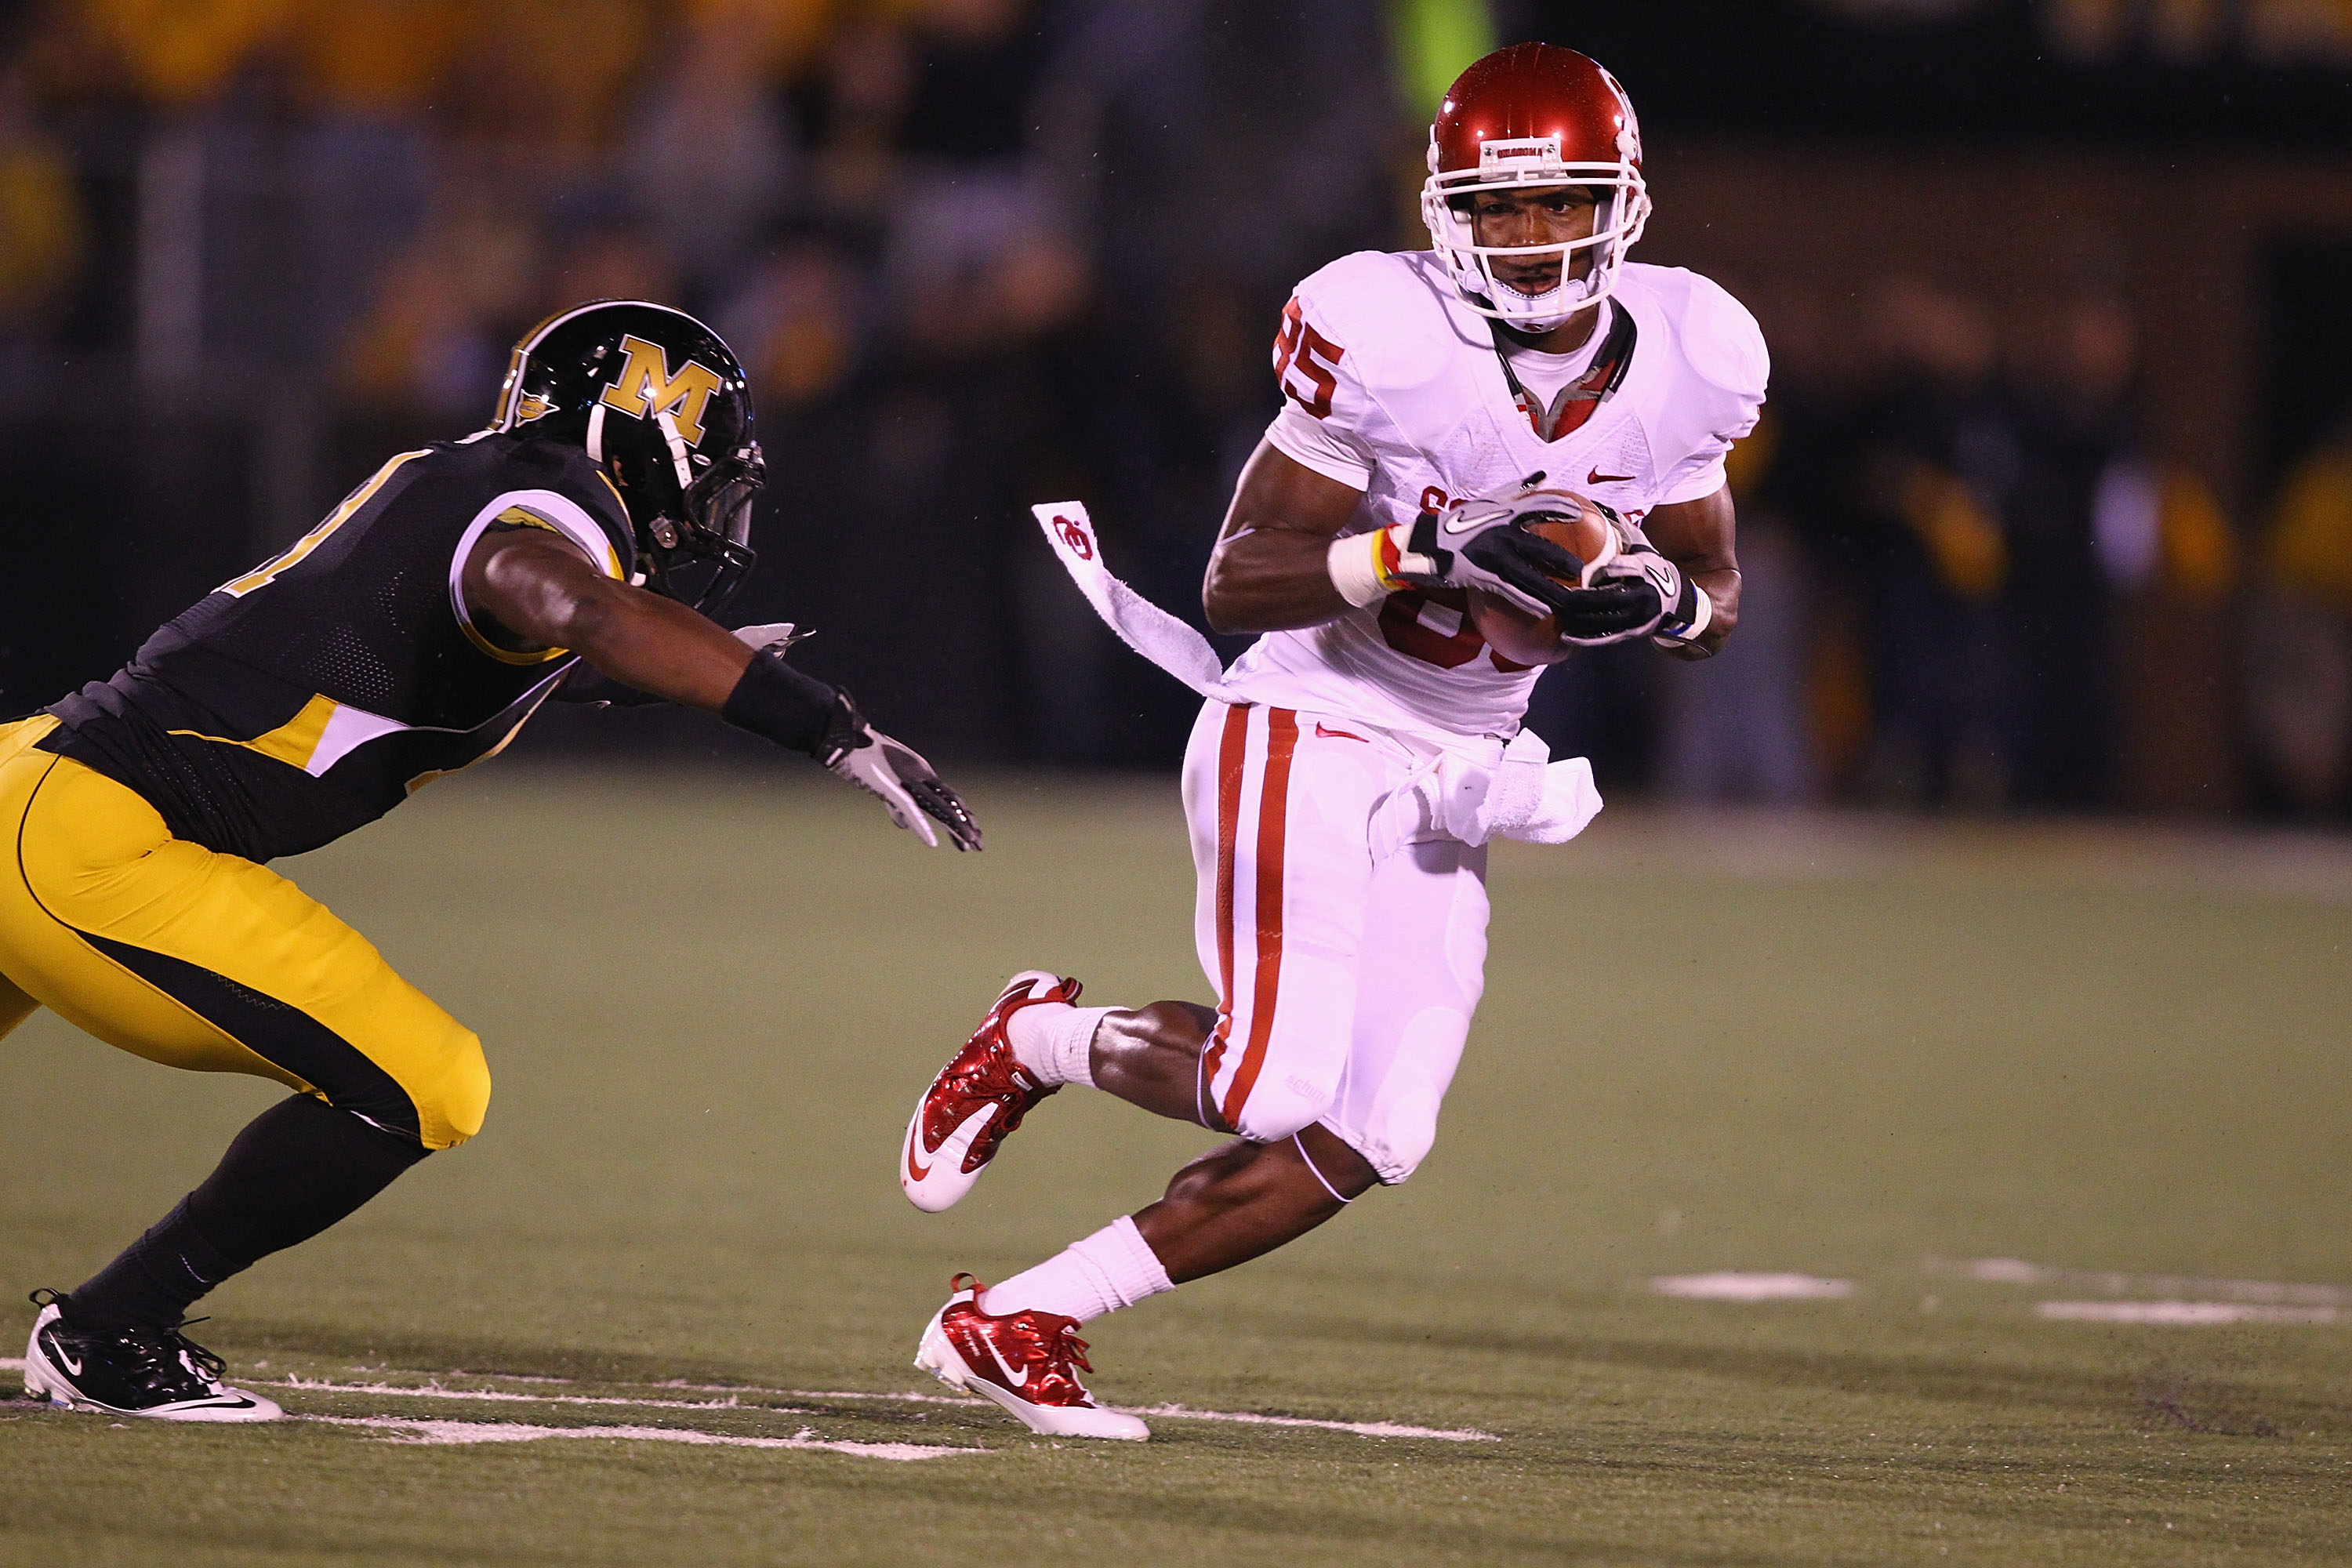 COLUMBIA, MO - OCTOBER 23: Ryan Broyles #85 of the Oklahoma Sooners in action against the Missouri Tigers at Faurot Field/Memorial Stadium on October 23, 2010 in Columbia, Missouri.  The Tigers beat the Sooners 36-27.  (Photo by Dilip Vishwanat/Getty Imag